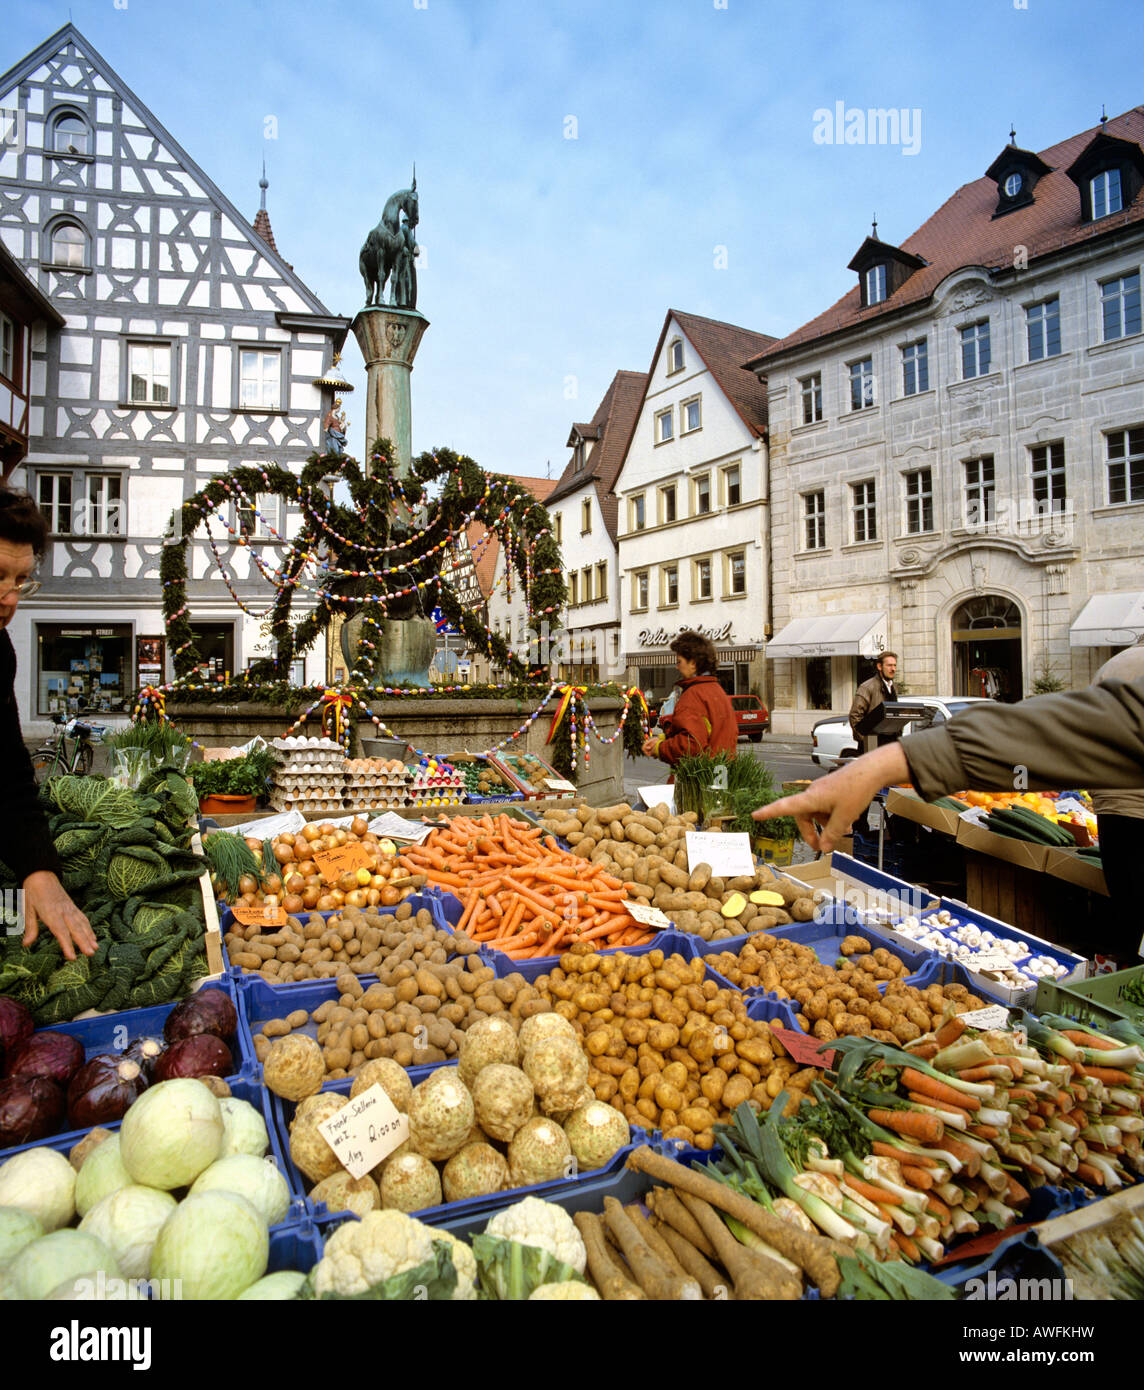 Produce stand at the market square in Forchheim, Upper Franconia, Bavaria, Germany, Europe - Stock Image